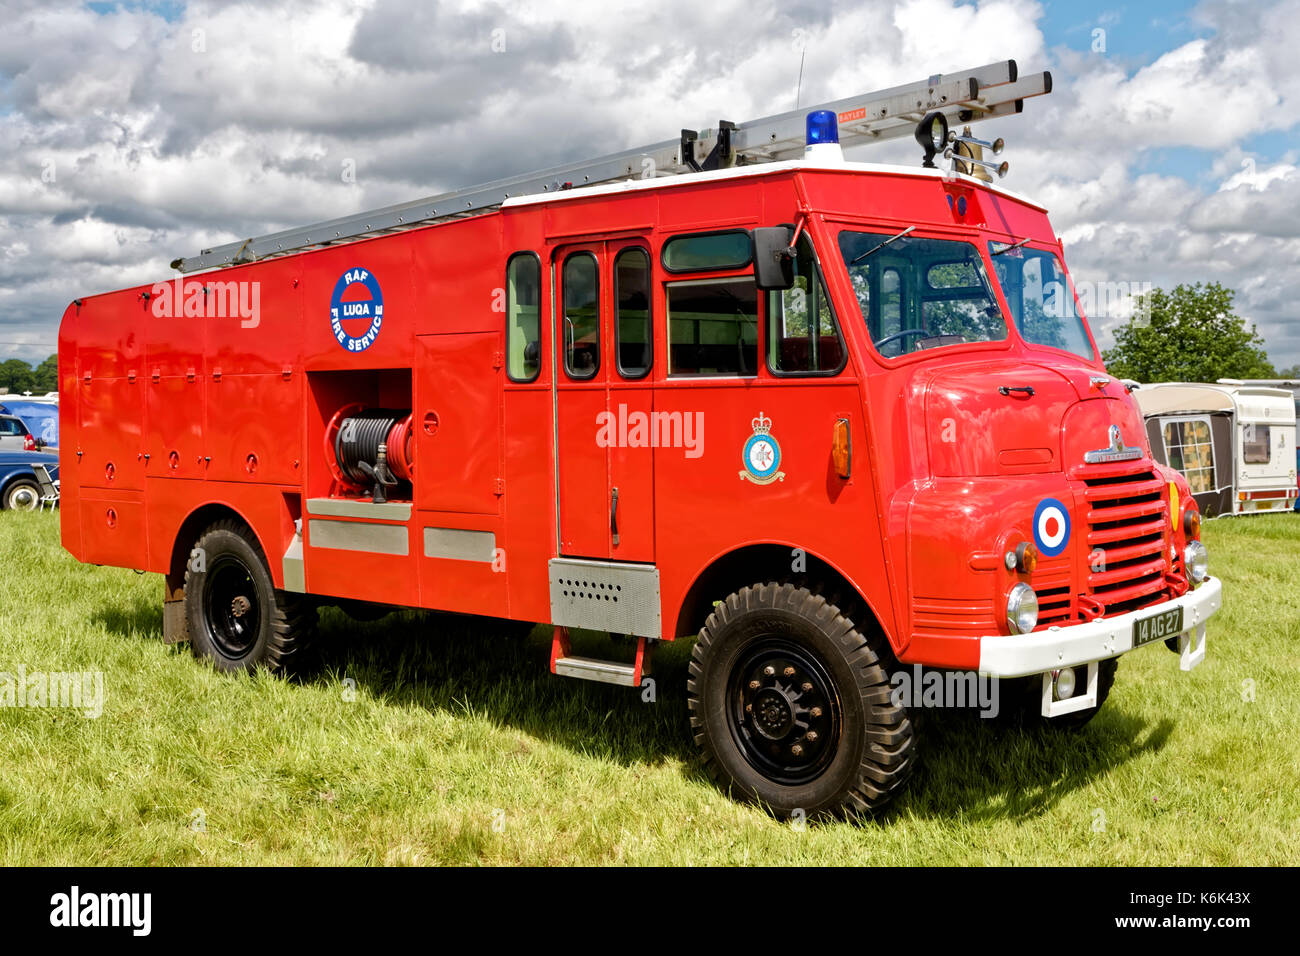 A 1956 Bedford RLHZ PGW340 Goddess fire engine posing in the livery of 14 AG 27 RAF Luqa Fire Service at the 2017 Selwood Steam & Vintage Rally. - Stock Image